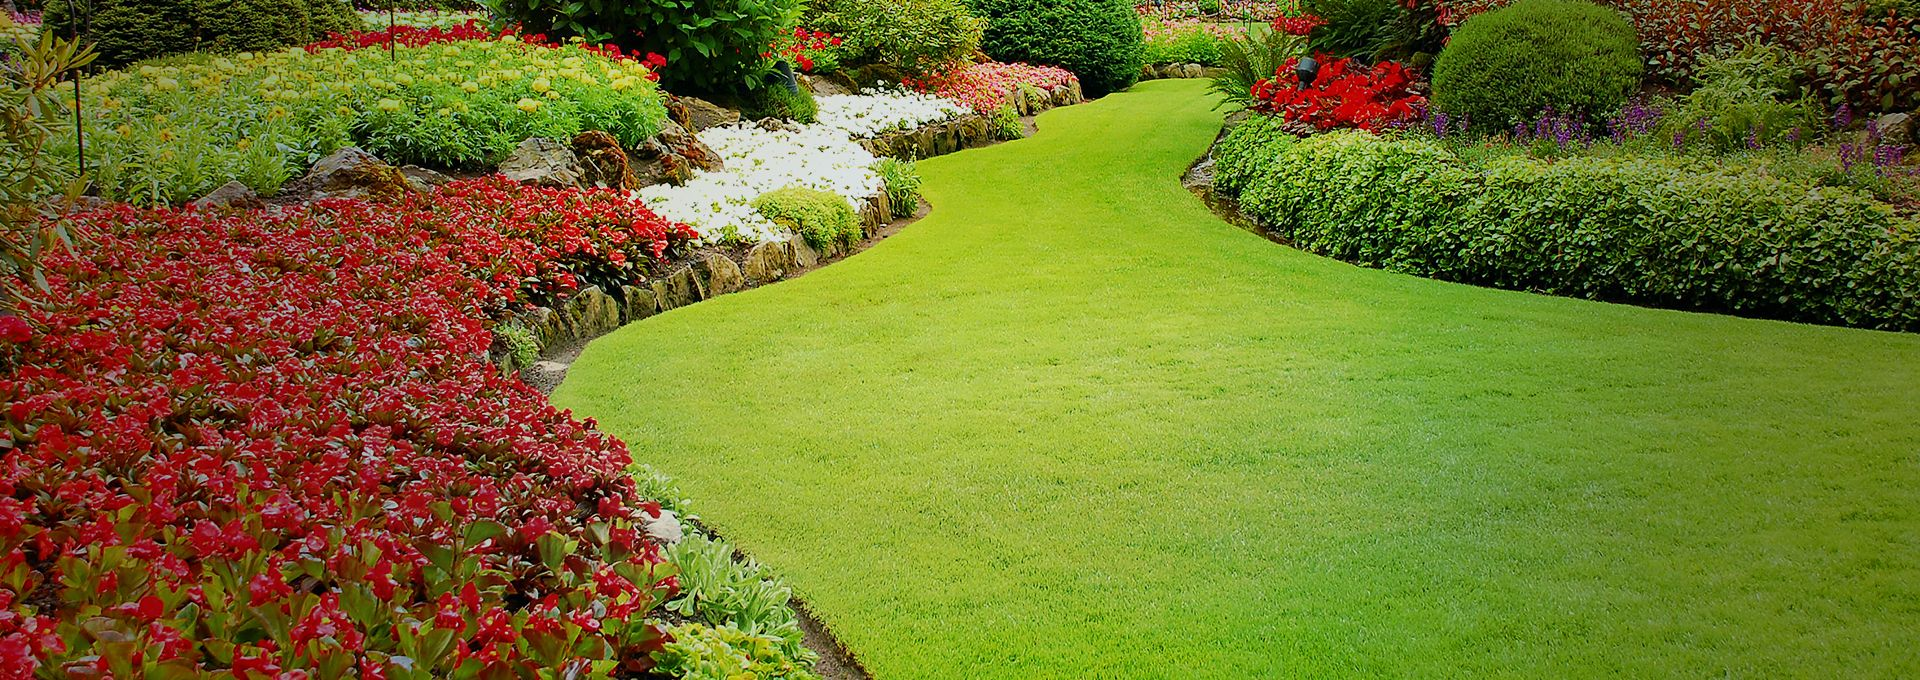 oklahoma landscaping - Landscaping Pictures